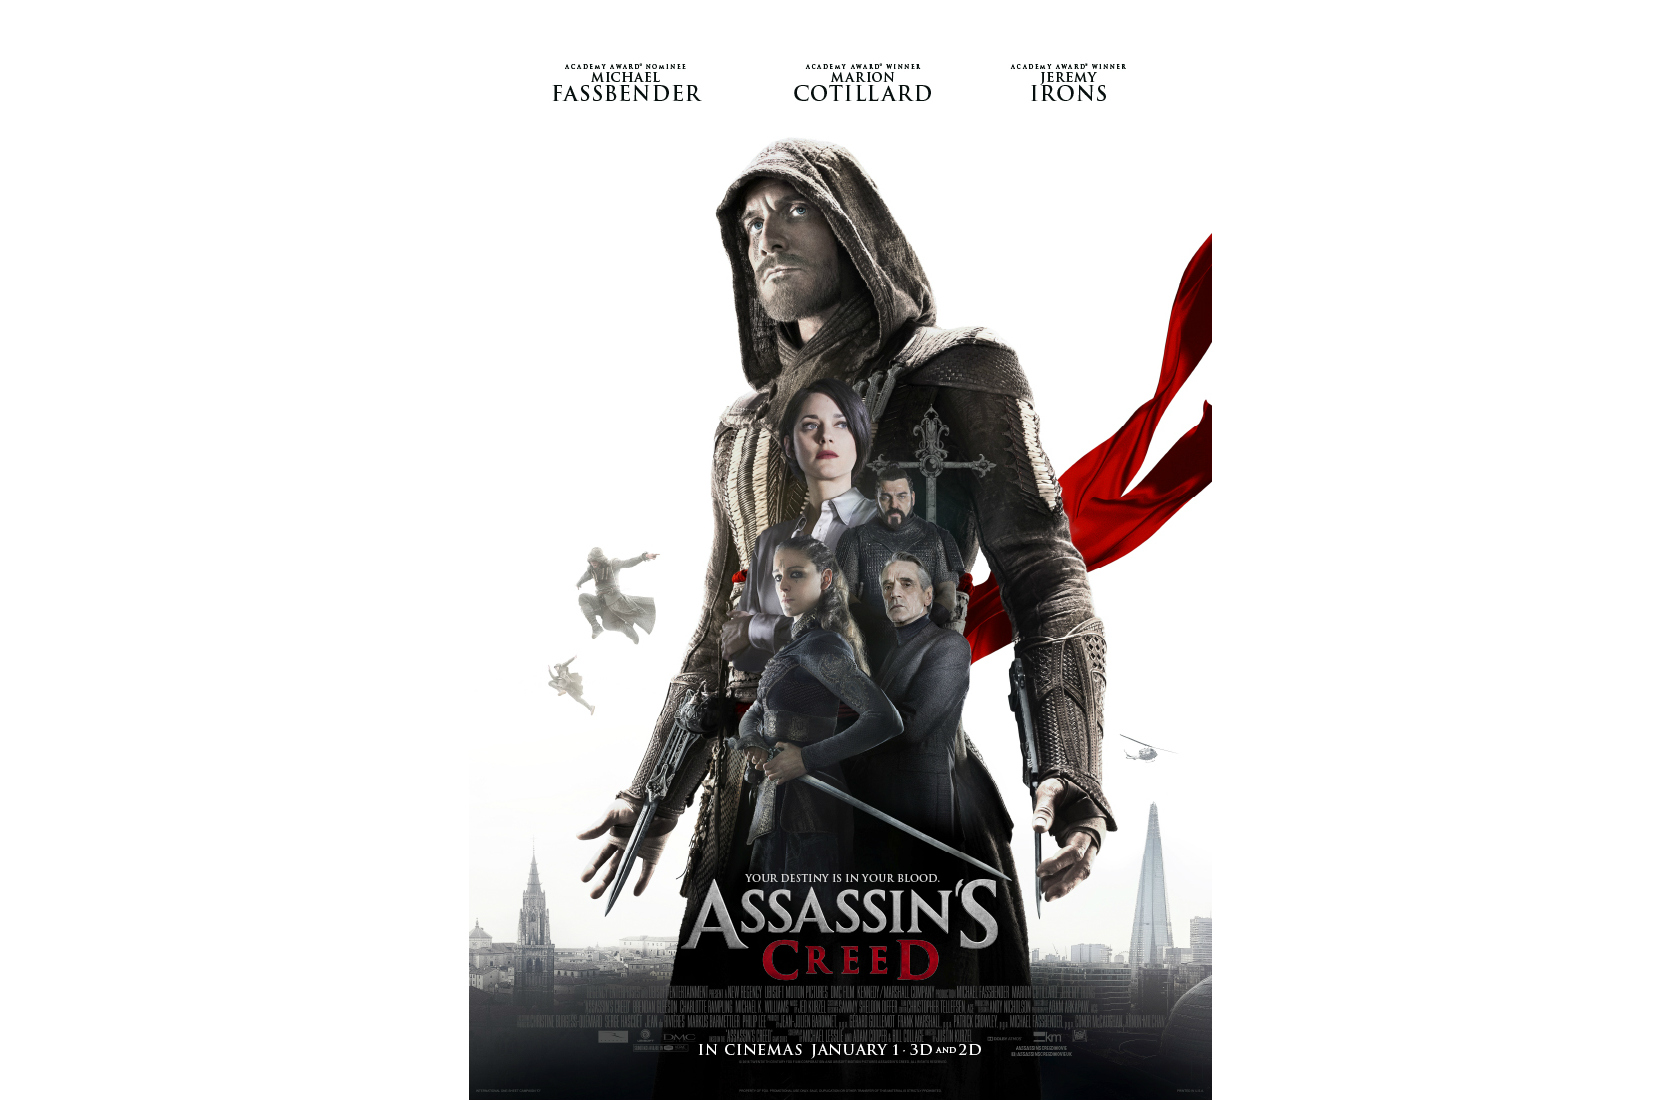 'Assassin's Creed' film could be a trilogy, if succesful